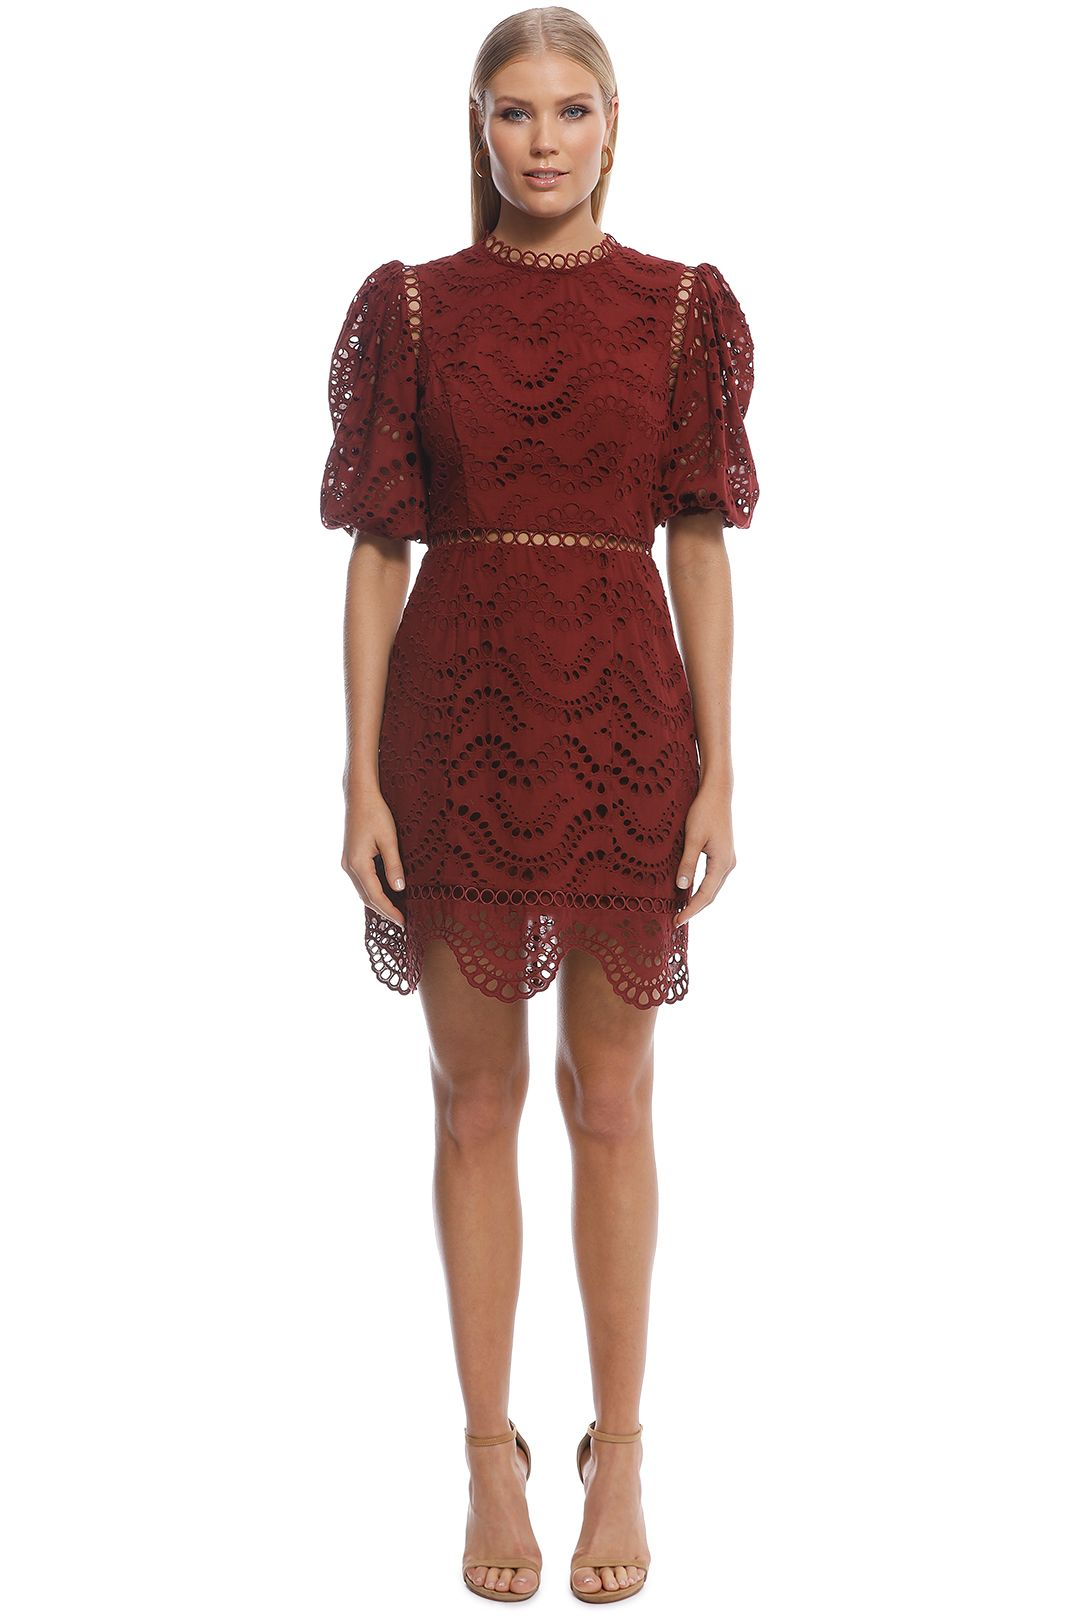 Zimmermann - Jaya Wave Short Dress - Merlot -  Front